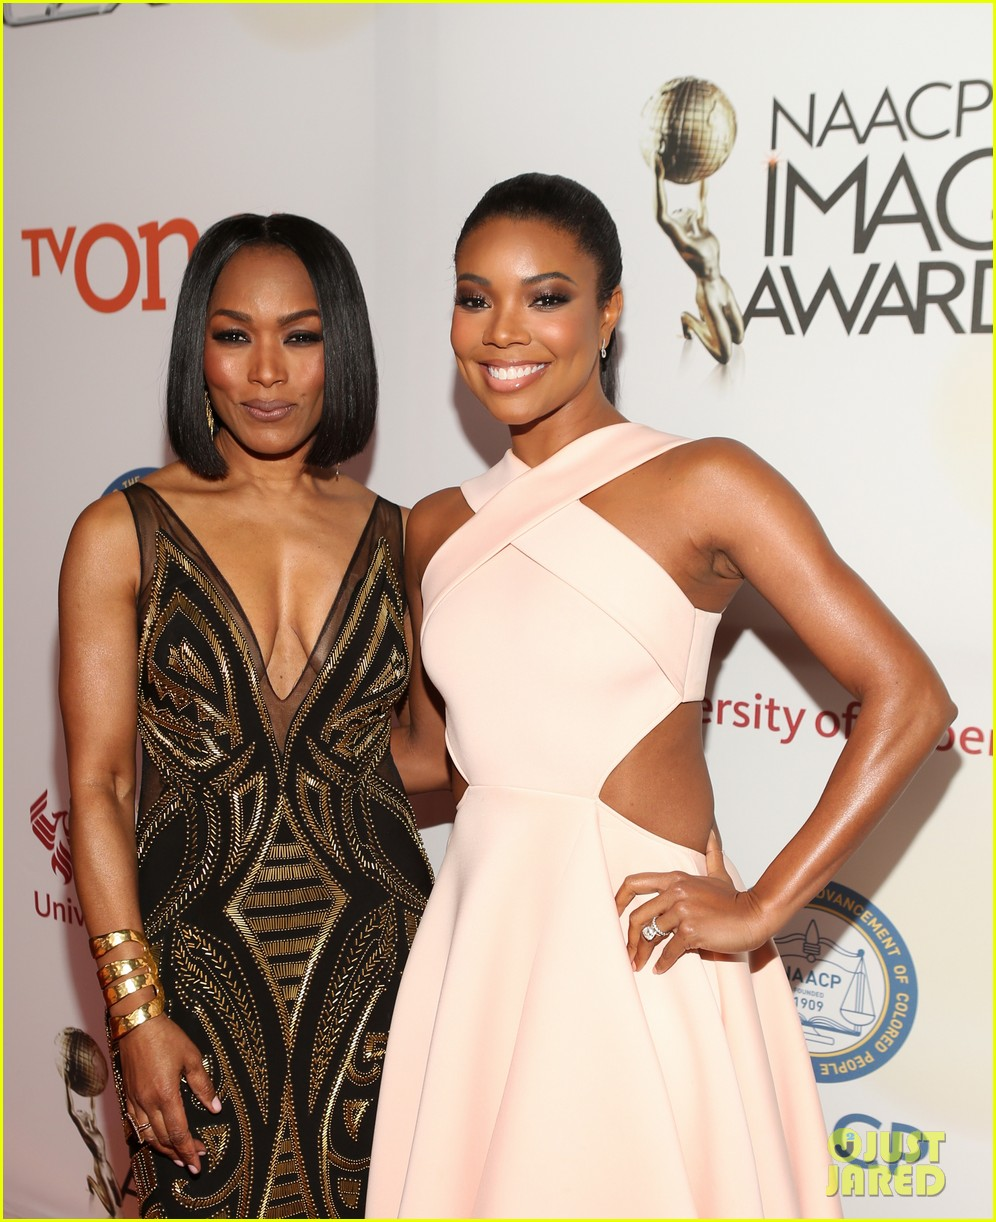 Gabrielle Union & Octavia Spencer Stun At NAACP Image